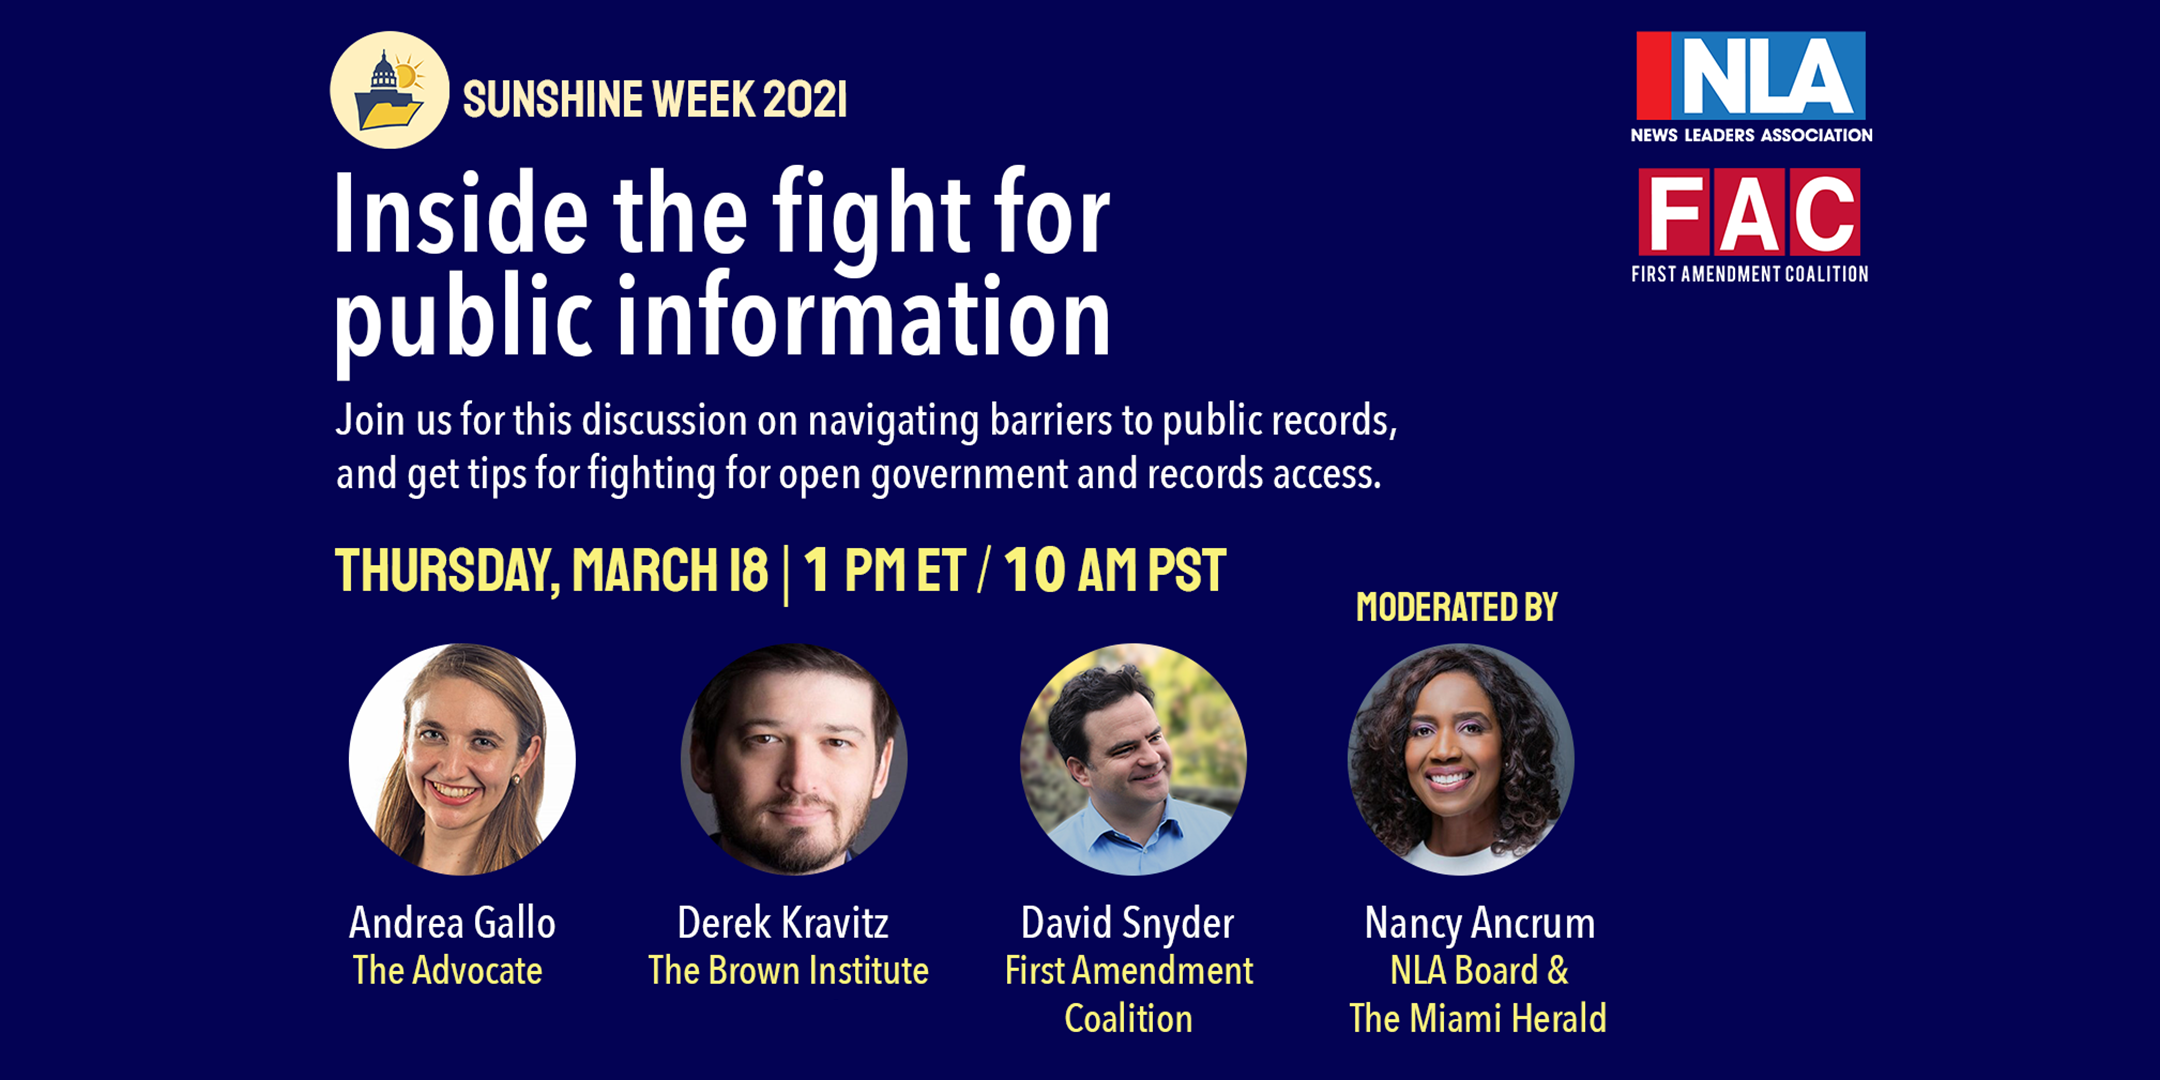 Inside the fight for public information